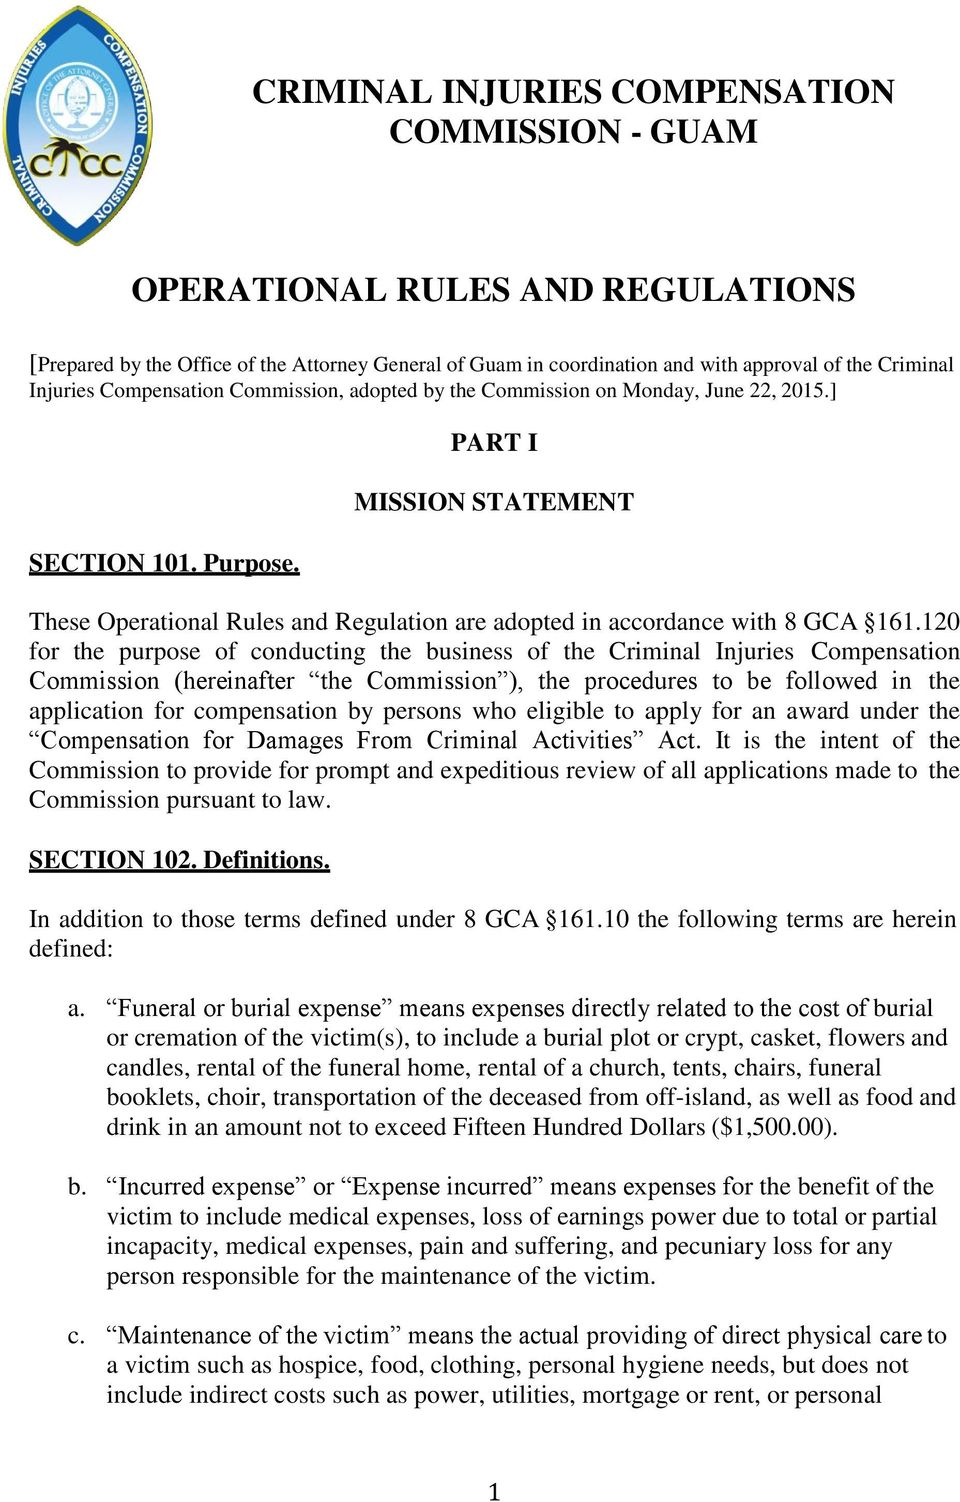 PART I MISSION STATEMENT These Operational Rules and Regulation are adopted in accordance with 8 GCA 161.